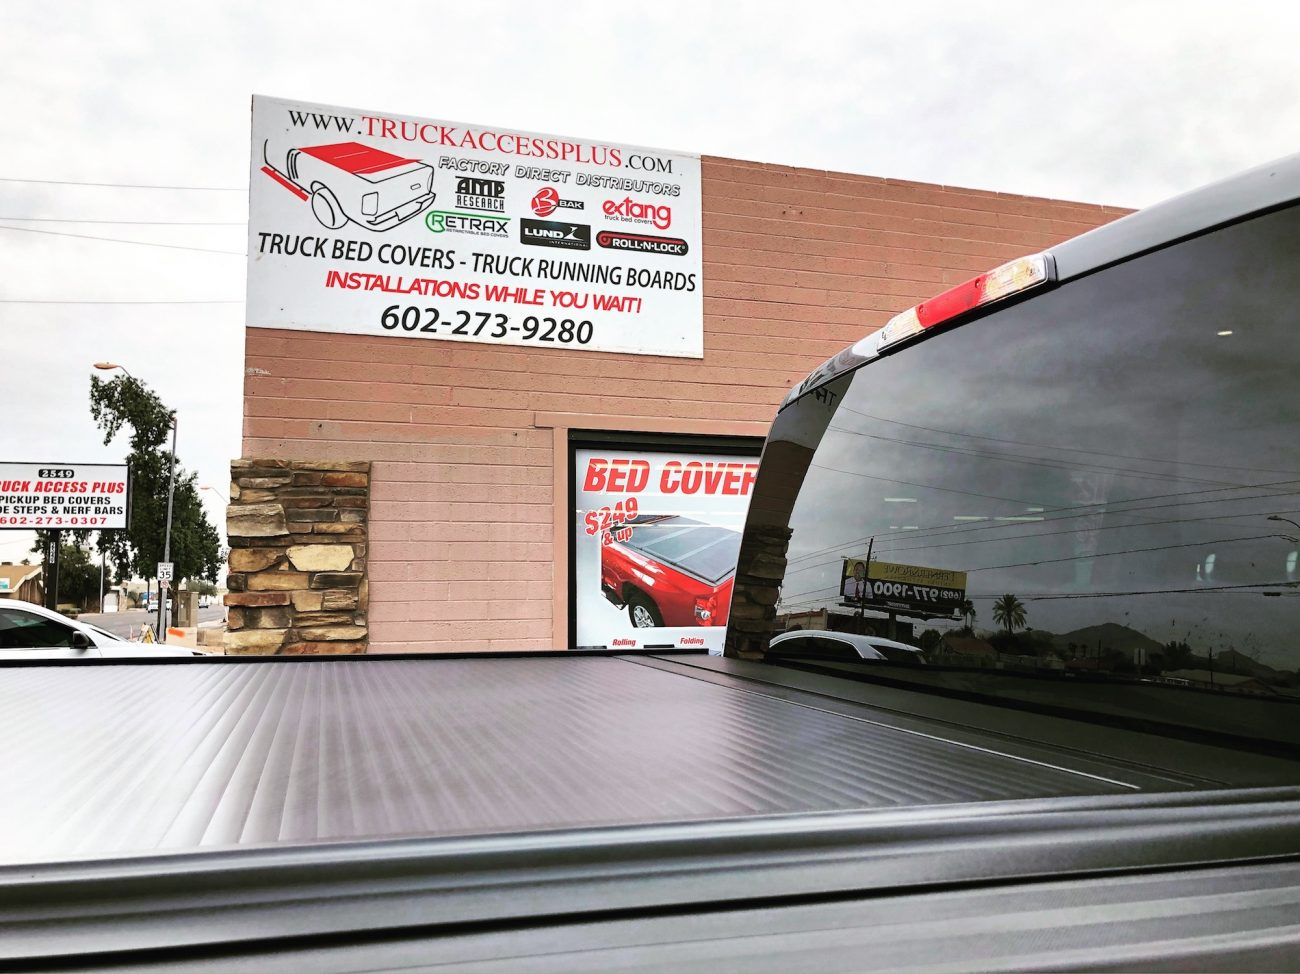 Retrax Cover on Truck in front of Truck Accessories Plus Building